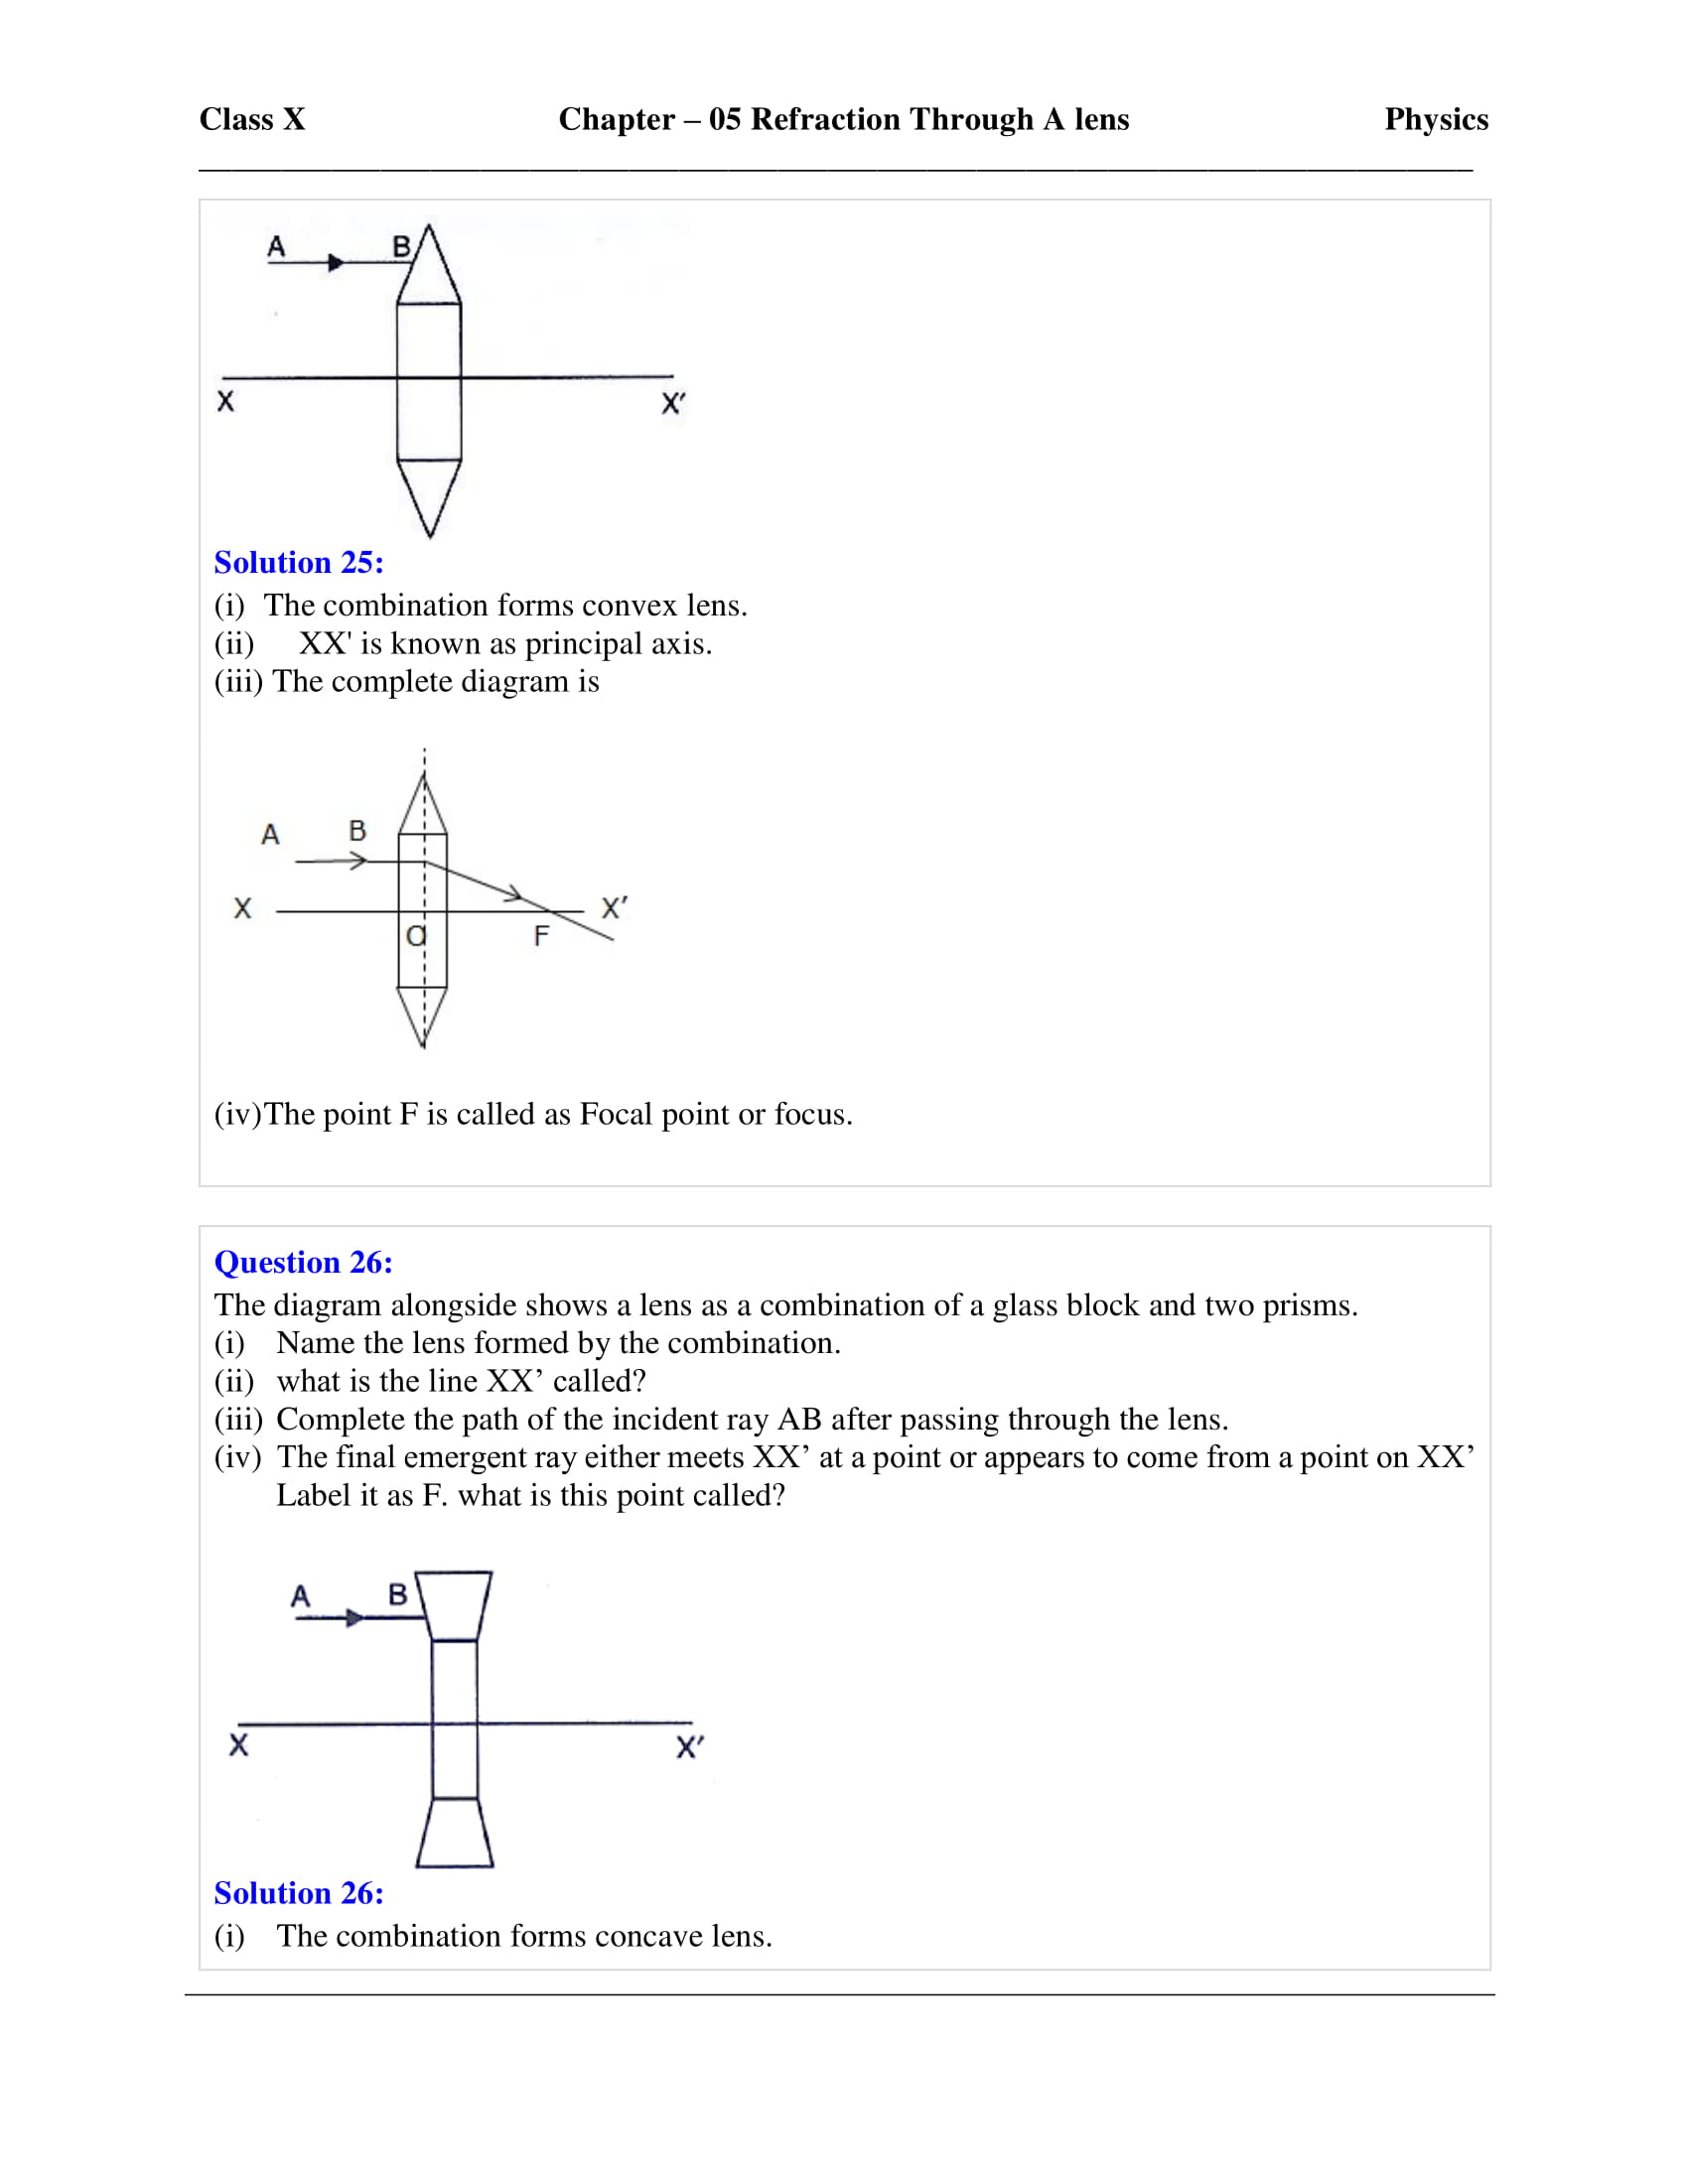 icse-selina-physics-solutions-class-10-chapter-5-refraction-through-a-lens-10